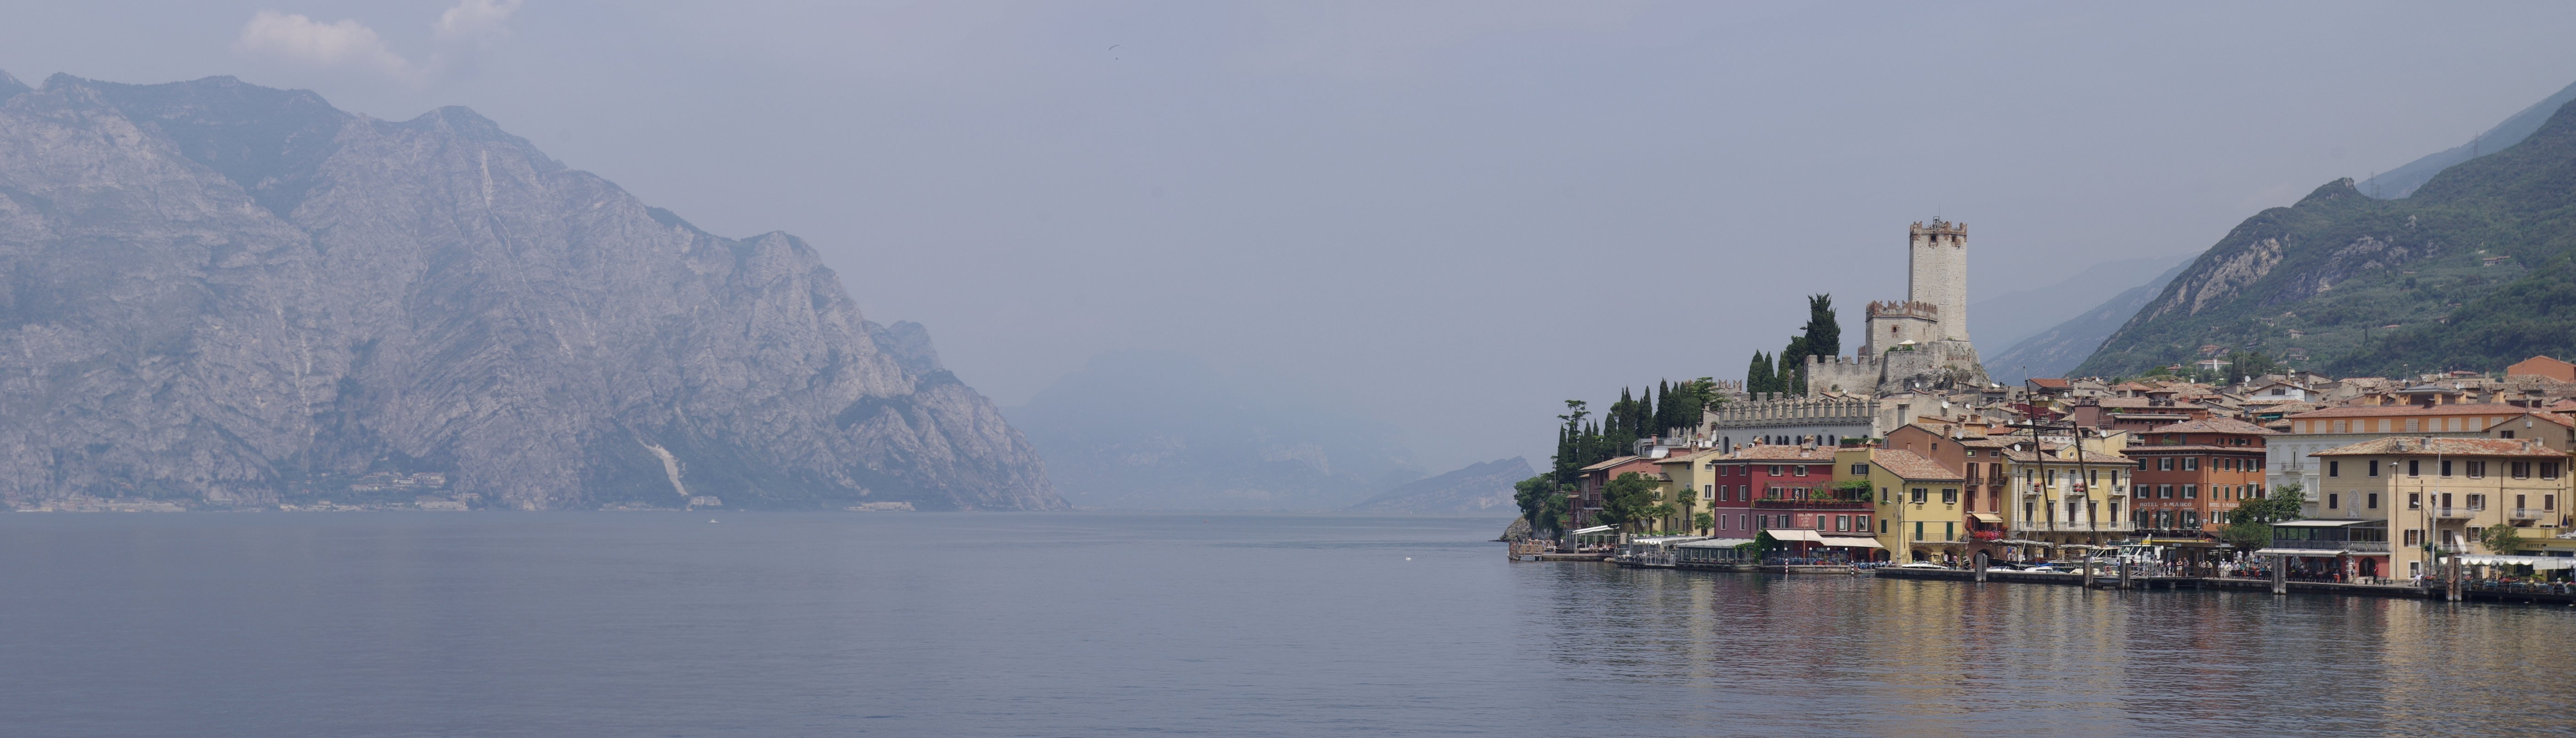 Lake Garda Transport Service Taxi Chauffeur Car Hire WIth Driver